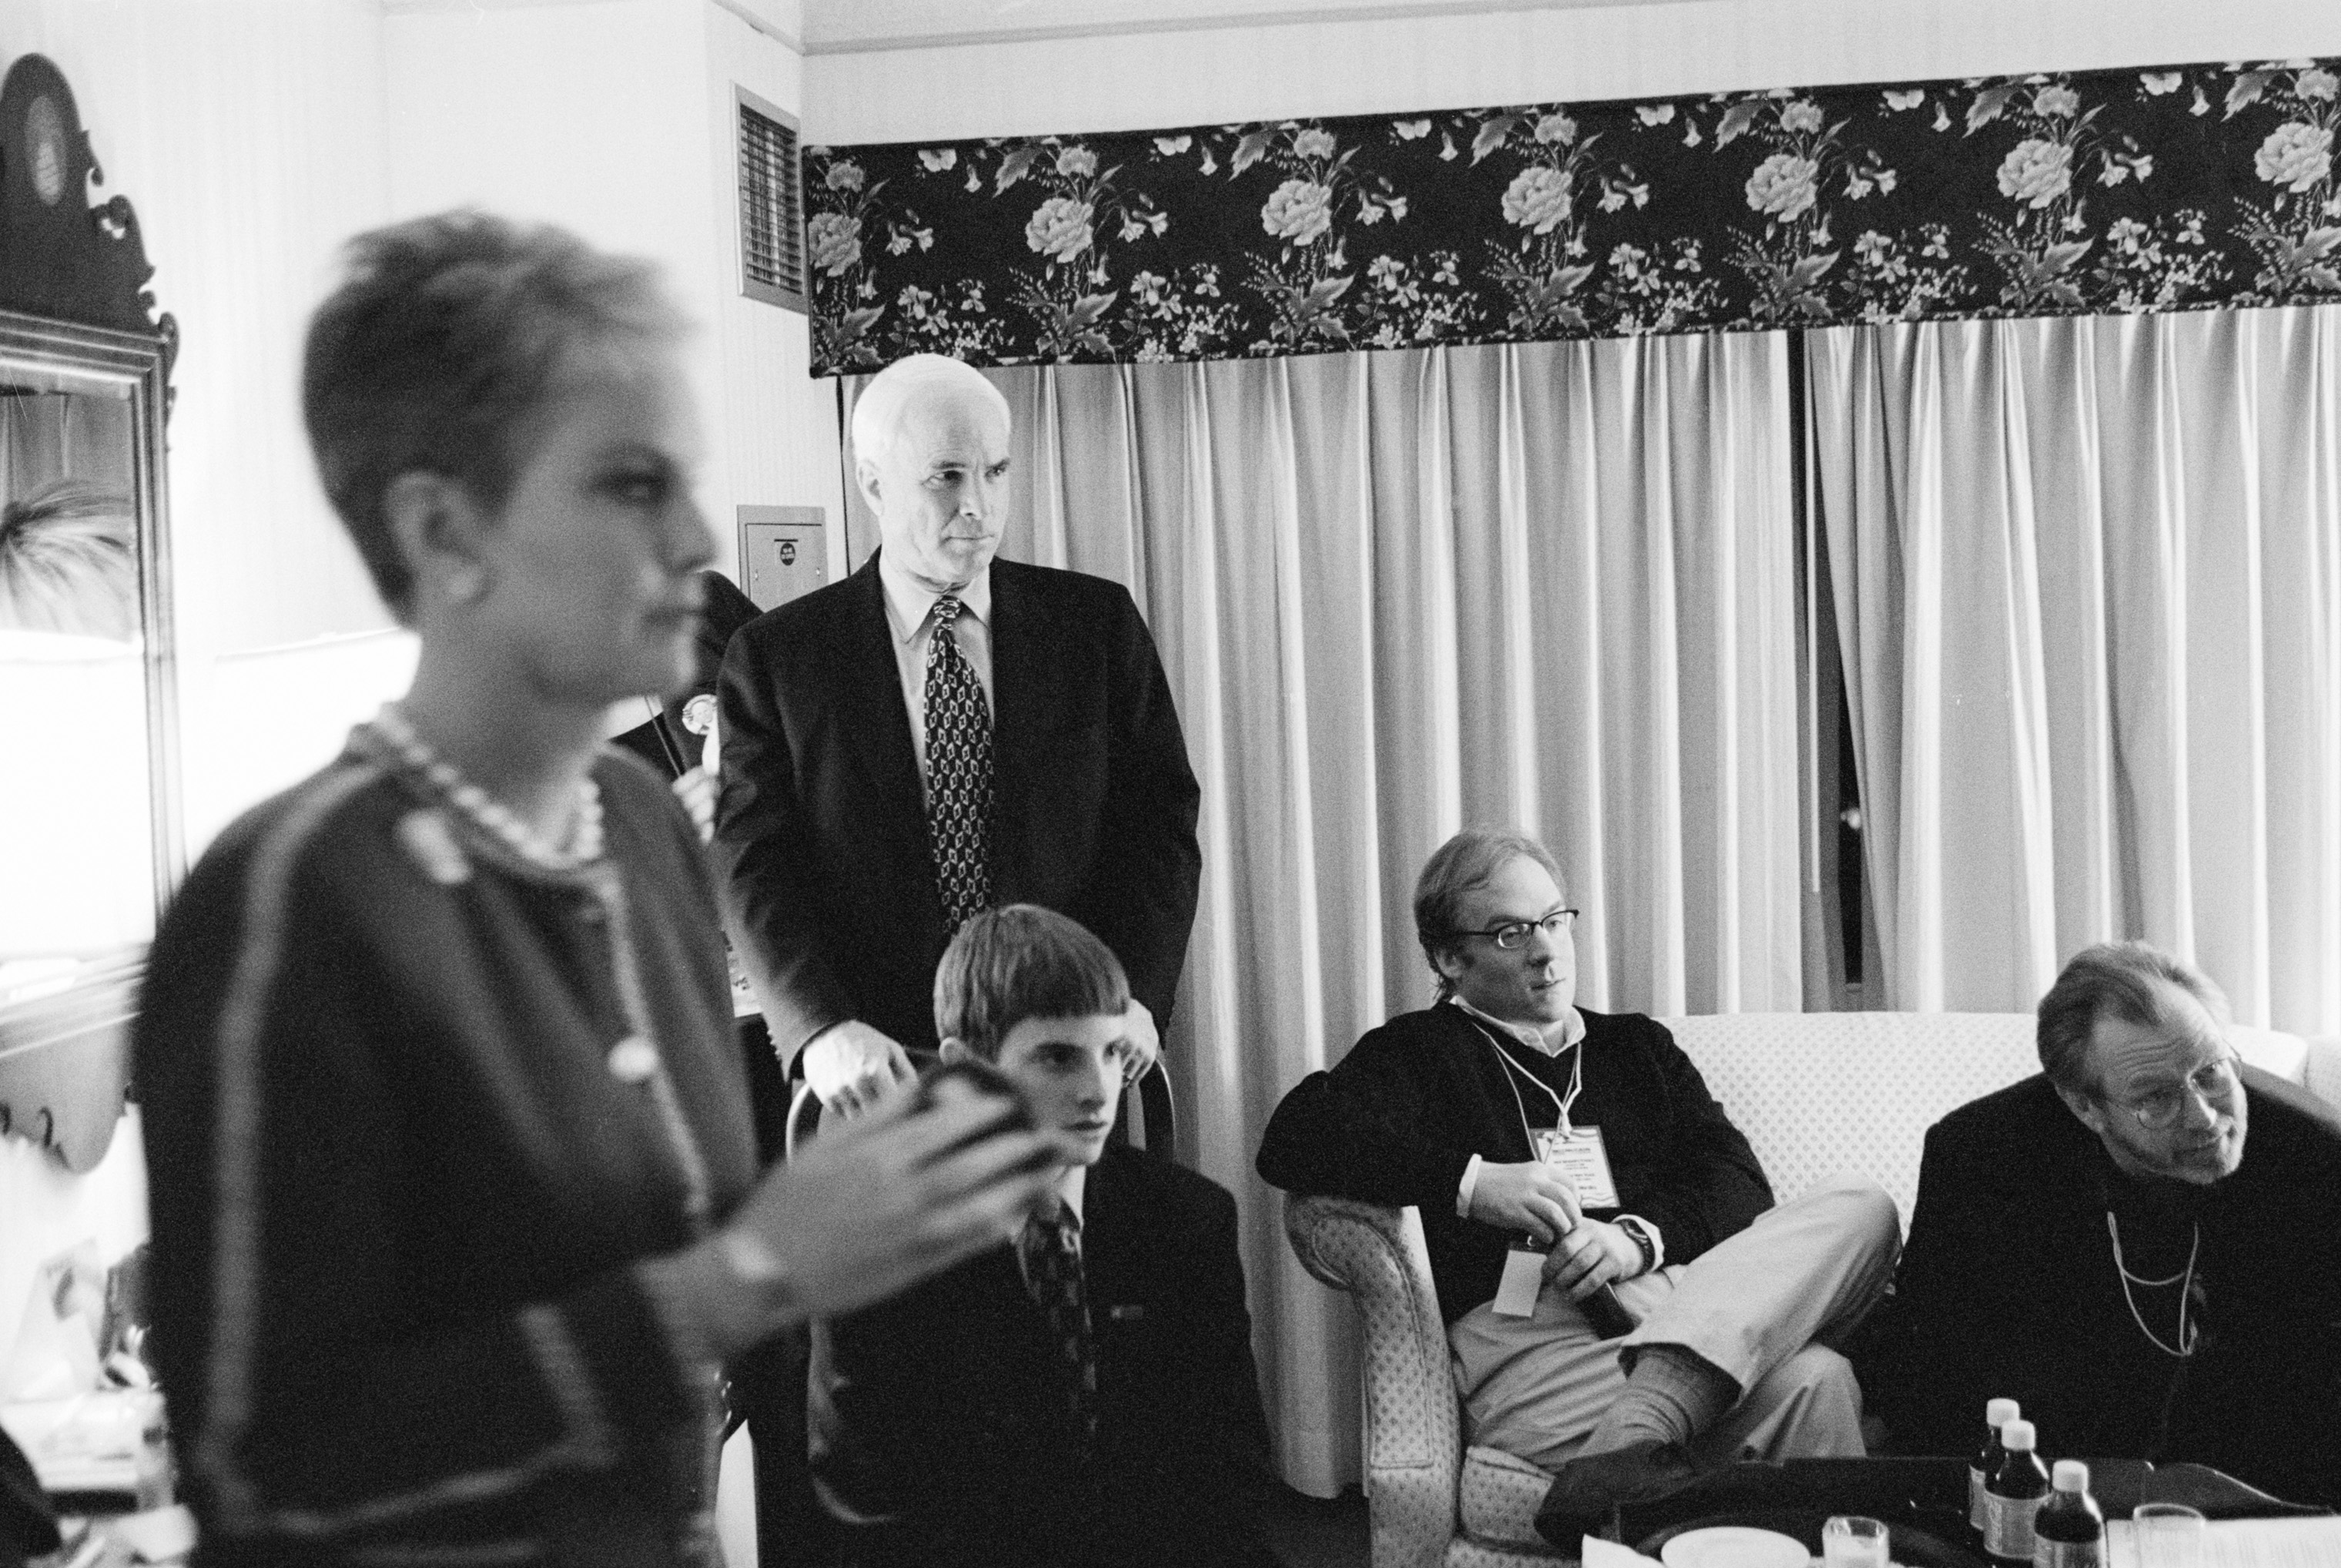 Presidential candidate John McCain with his family and members of his campaign team watching the progress of the state primary in N.H. on Feb. 1, 2000.